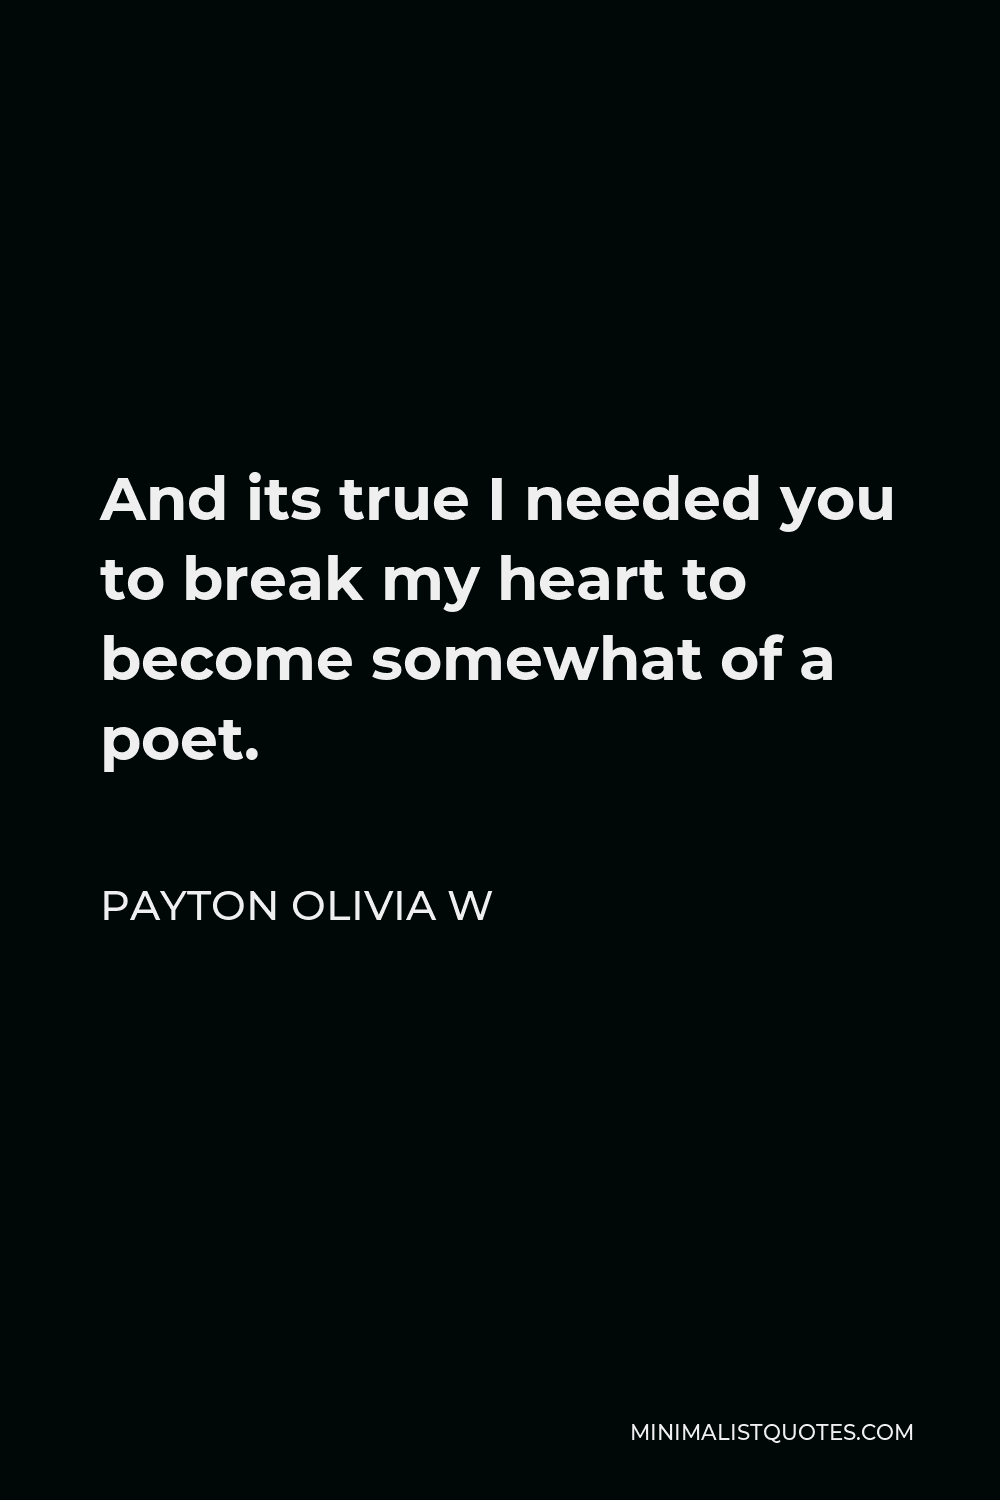 Payton Olivia W Quote - And its true I needed you to break my heart to become somewhat of a poet.